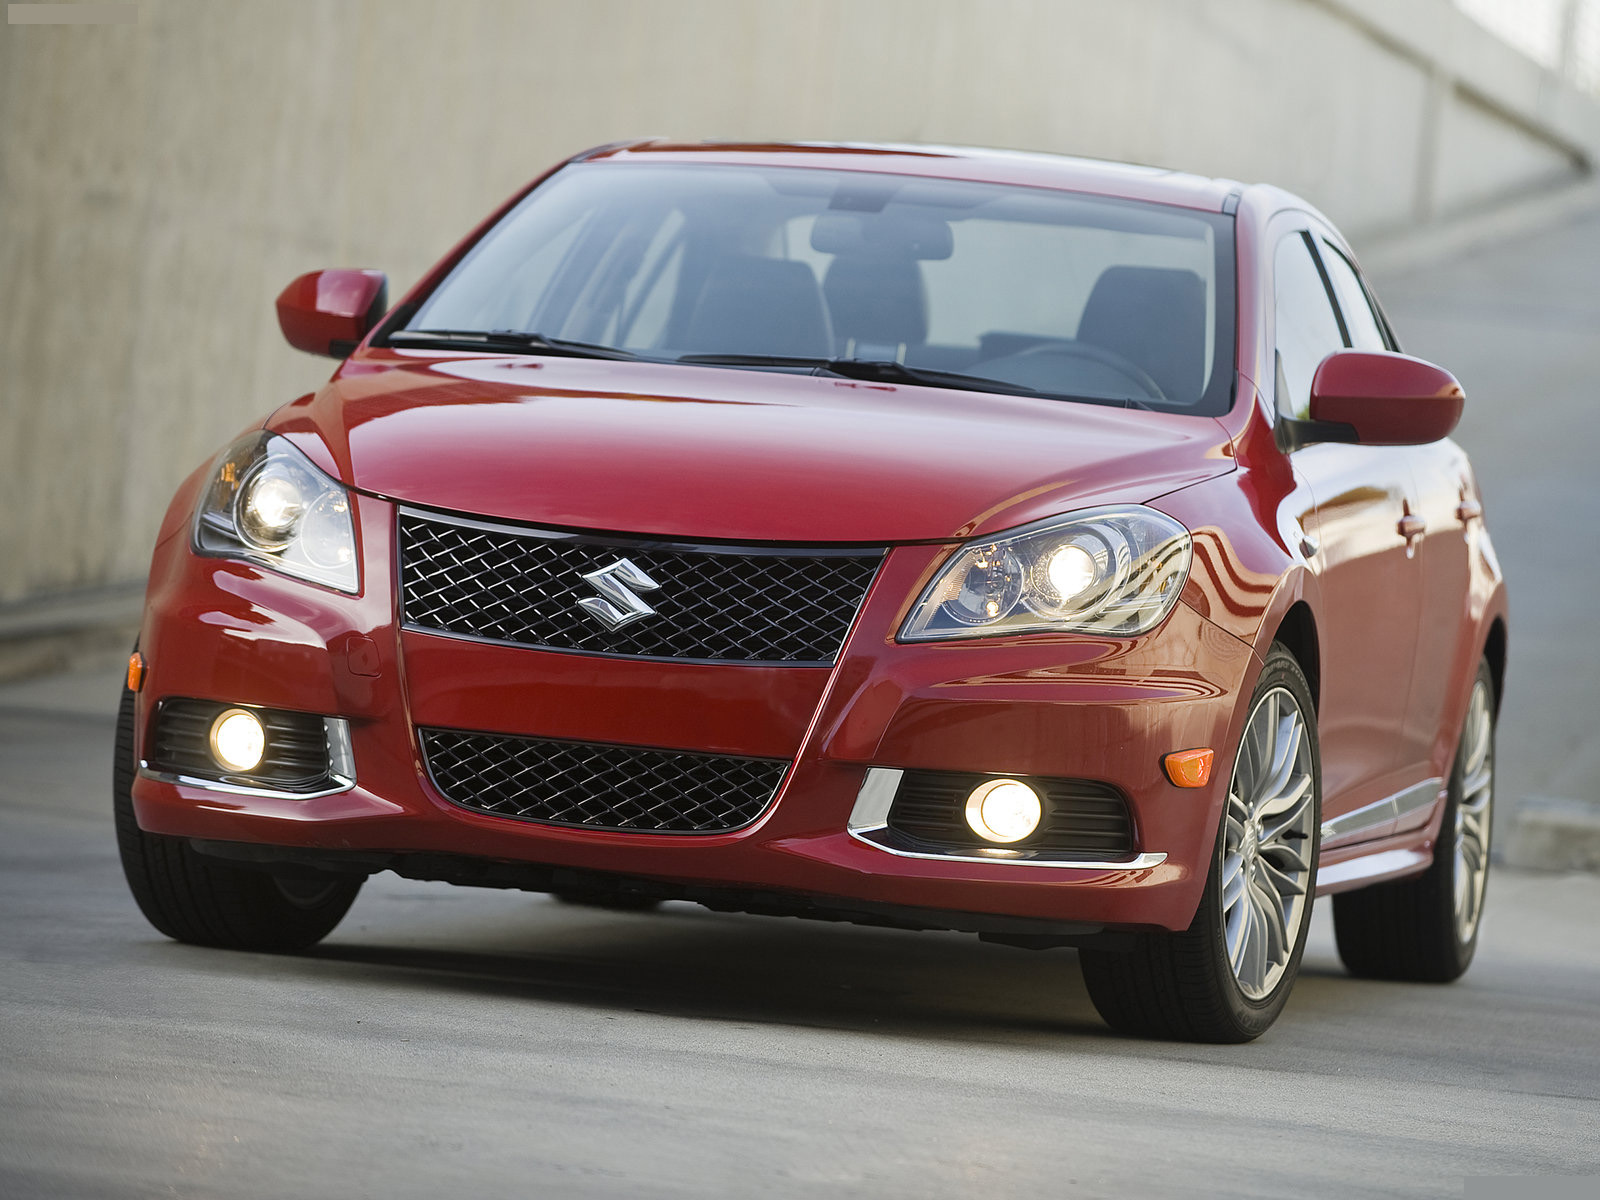 Latest Cars And Bike News 2011 Maruti Suzuki Kizashi Launched In